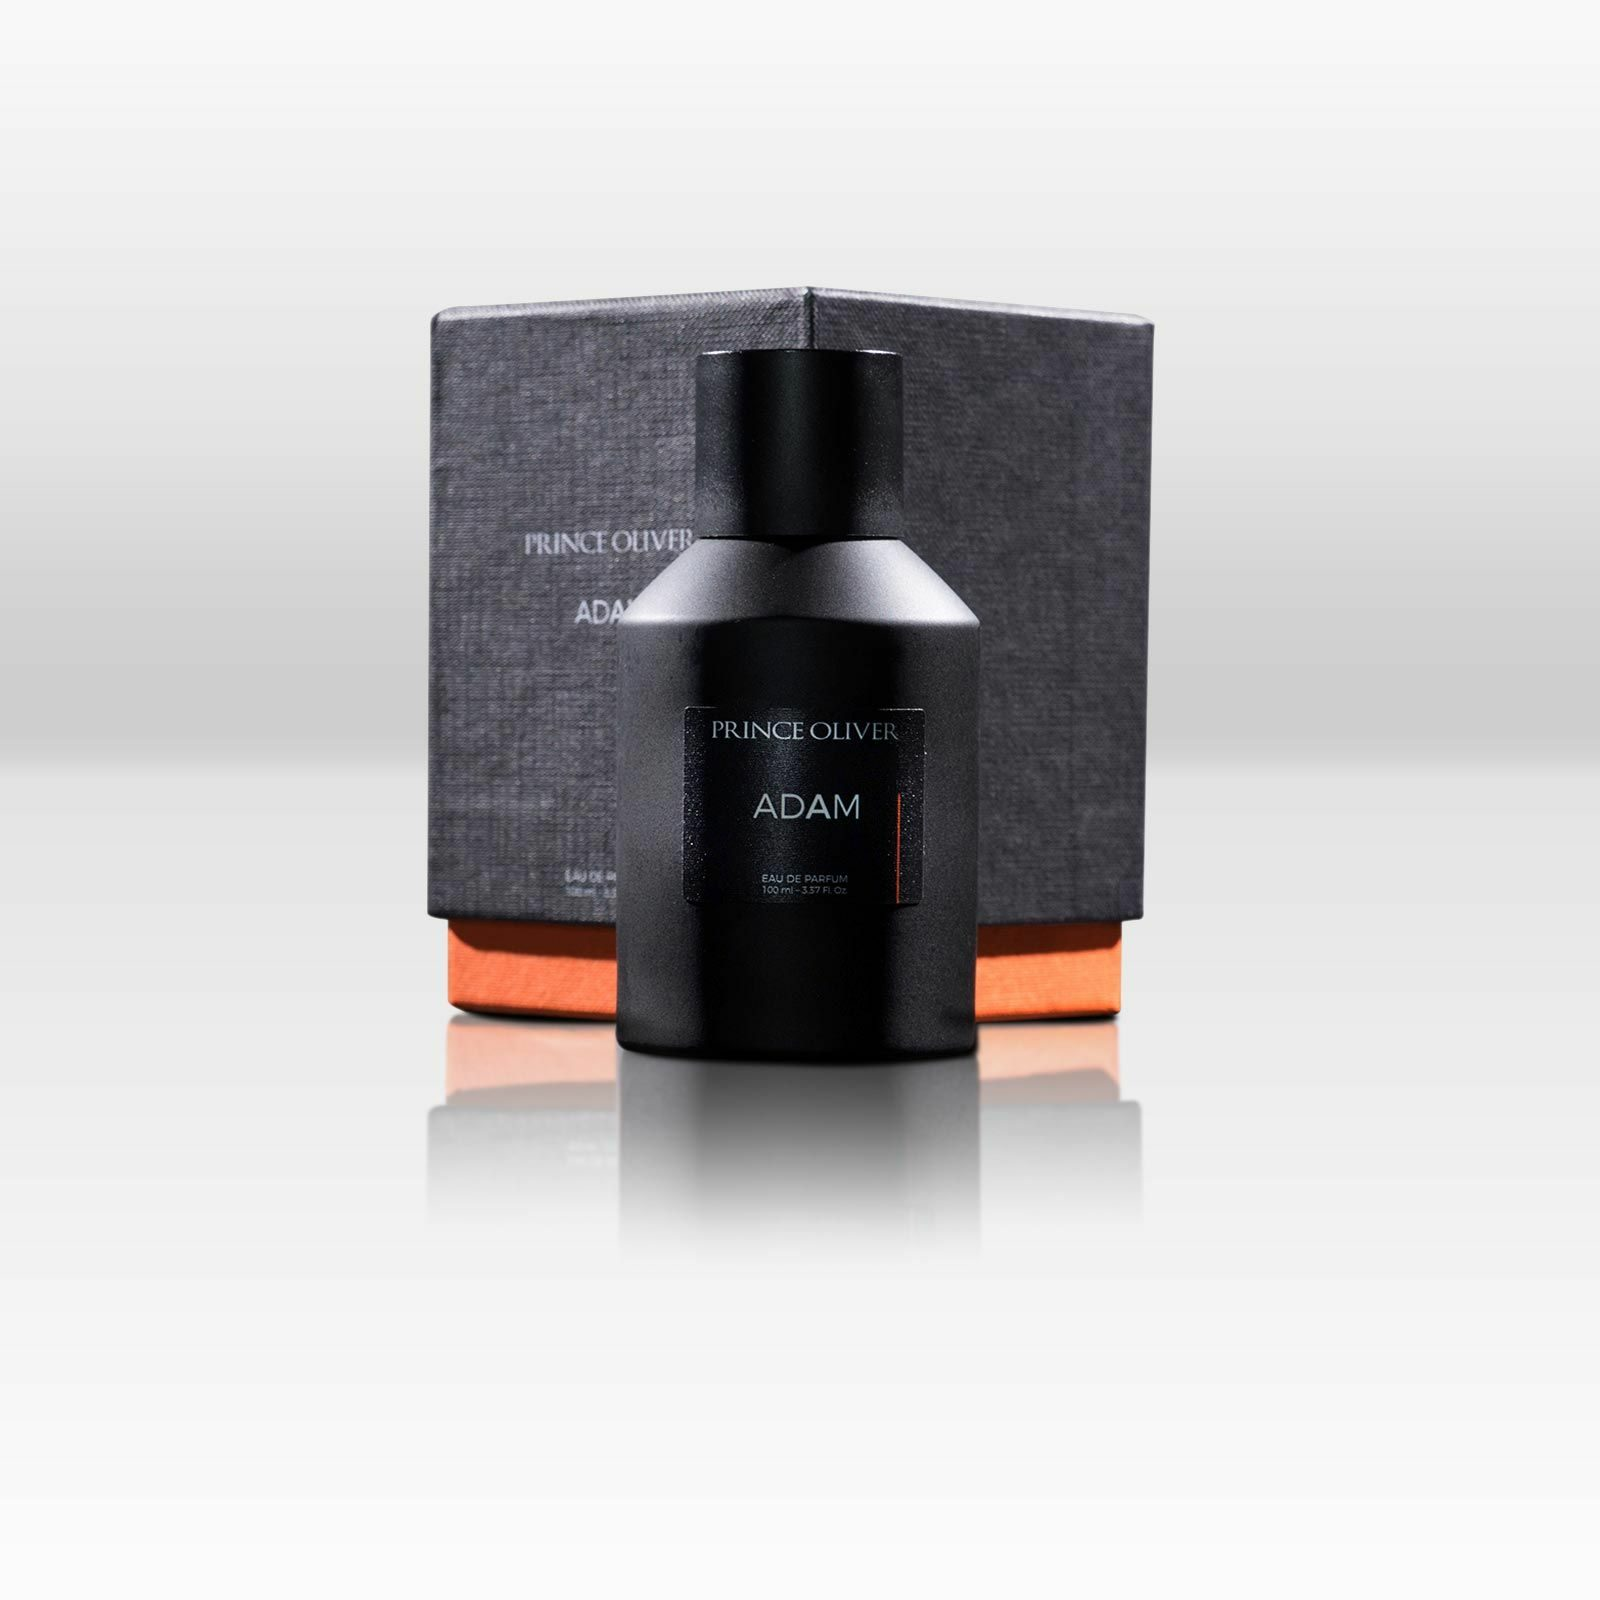 Prince Oliver EAU DE PARFUM ADAM - Collection S/S